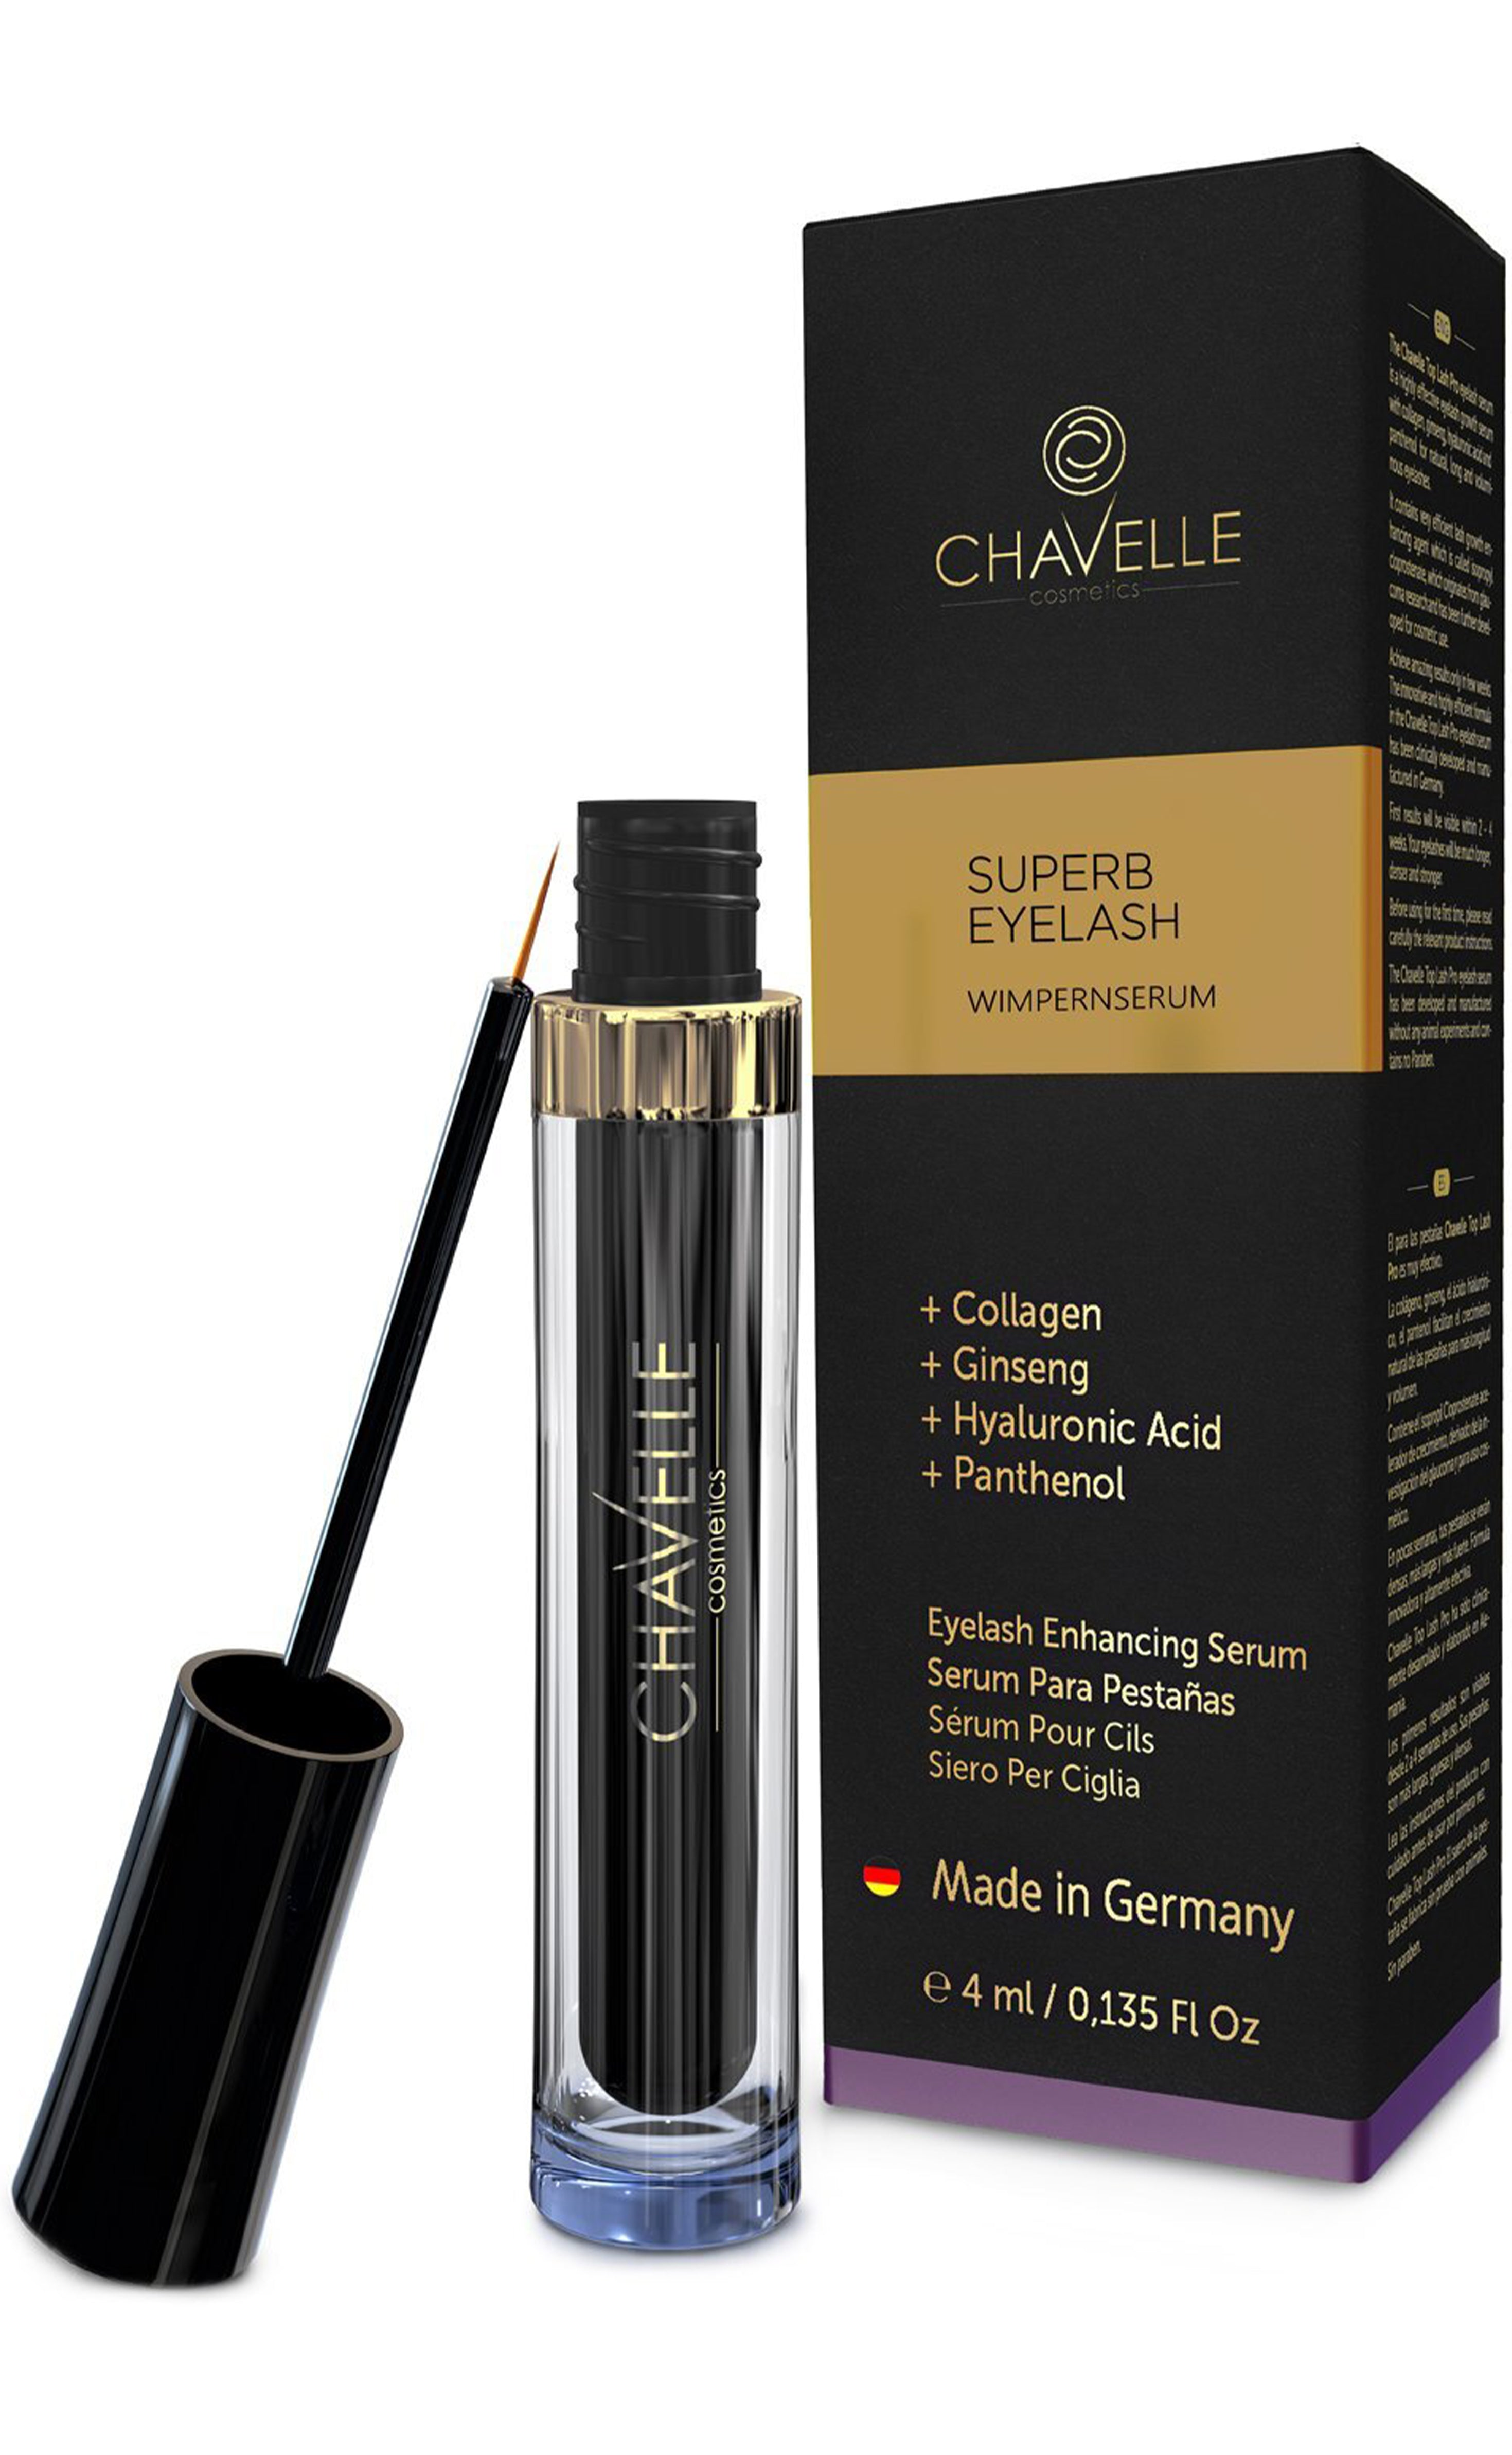 Superb Eyelash - 0.135 Fl Oz Eyelash Growth Serum